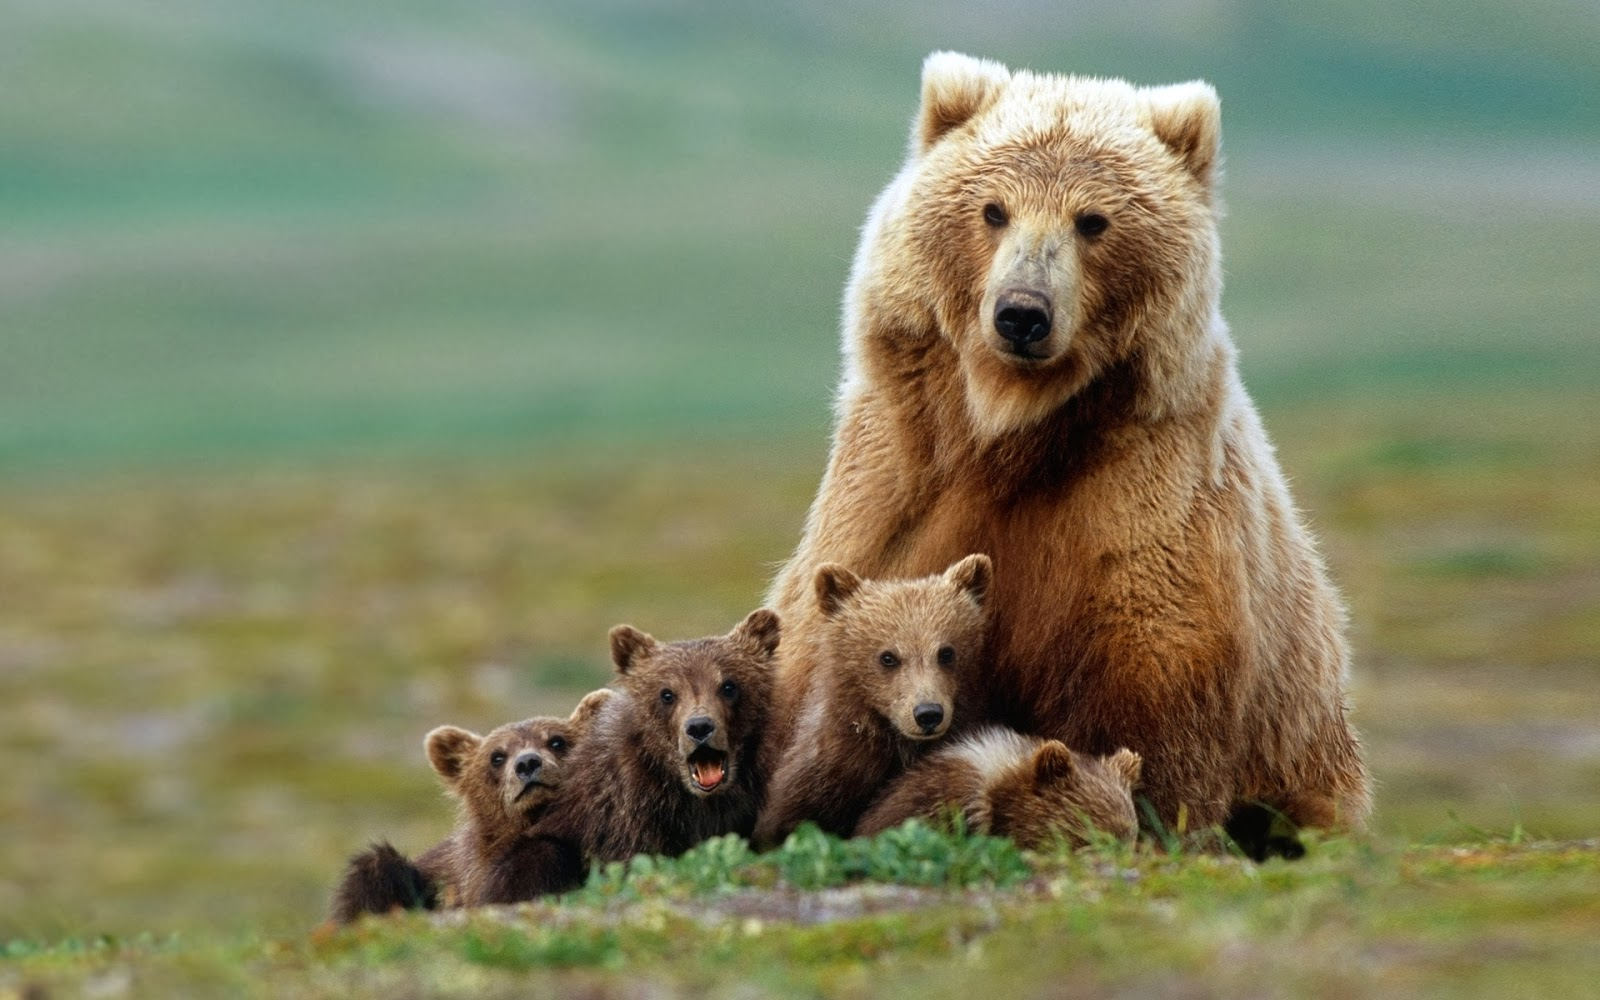 Best   Wallpaper Horse Family - Bears-Wallpaper-bear-bears-grizzly-bear-the-family  Collection_913081.jpg